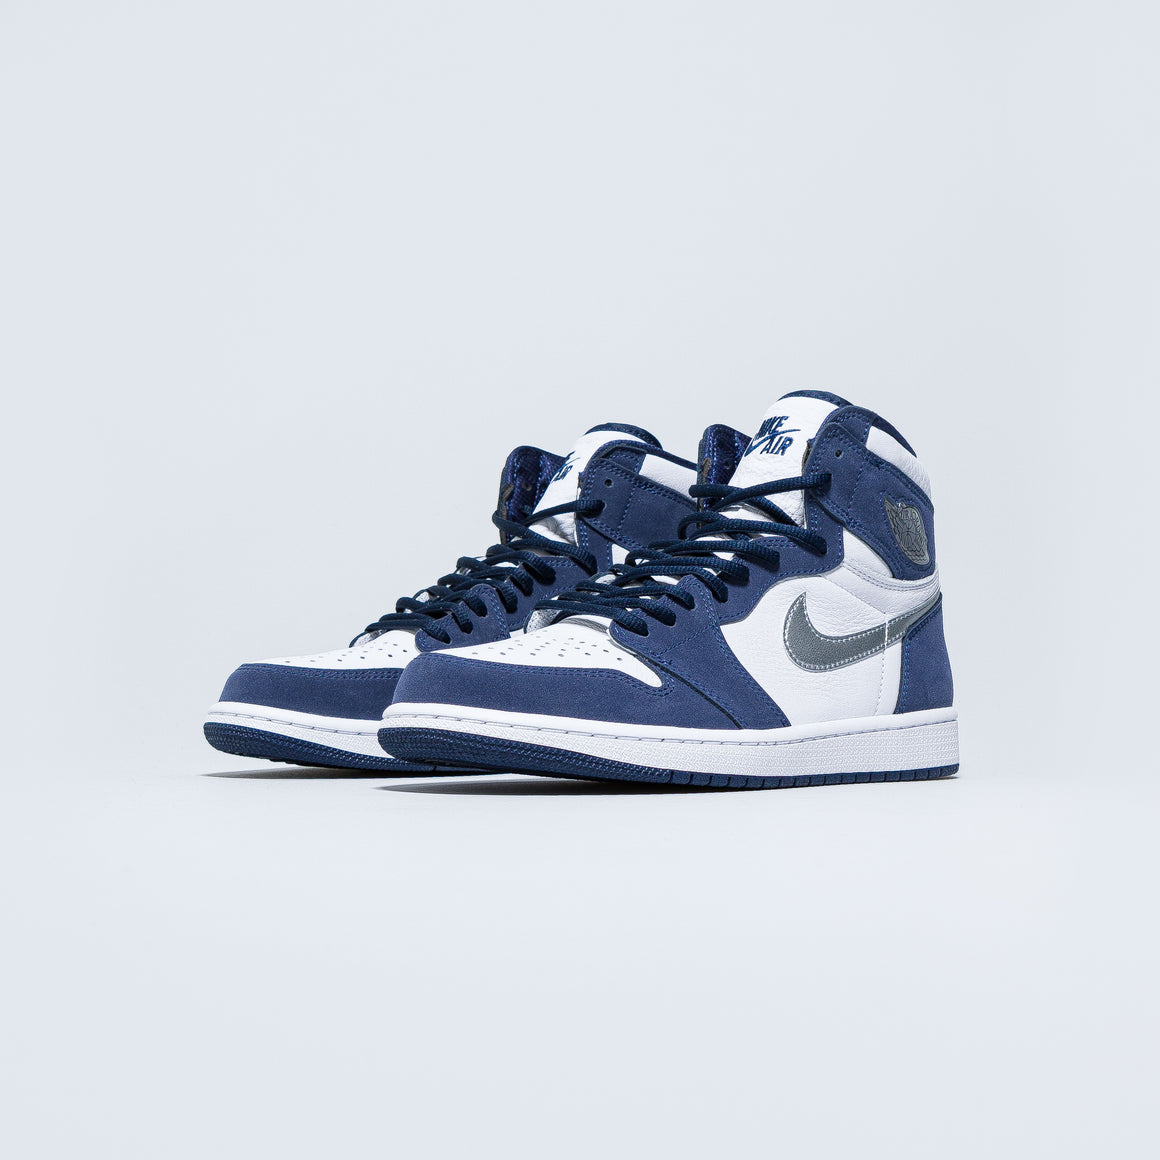 Jordan - Air Jordan 1 High OG Co.JP - White/Metallic Silver-Midnight Navy - Up There